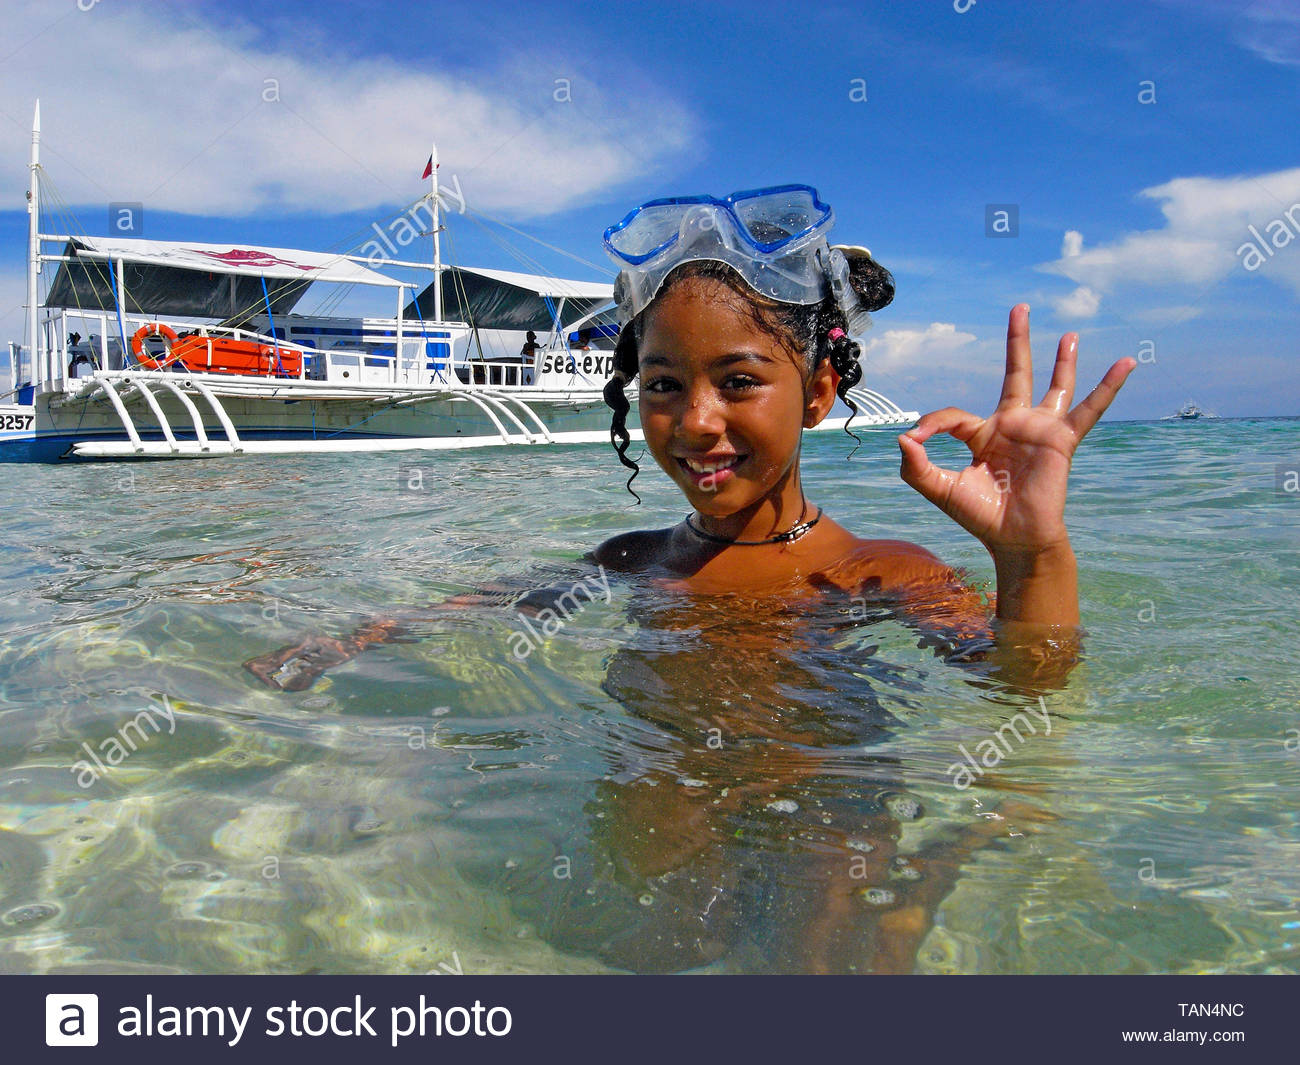 Little philippine girl with diving mask shows the o.k. sign, lagoon of Malapascua island, Cebu, Visayas, Philippines - Stock Image